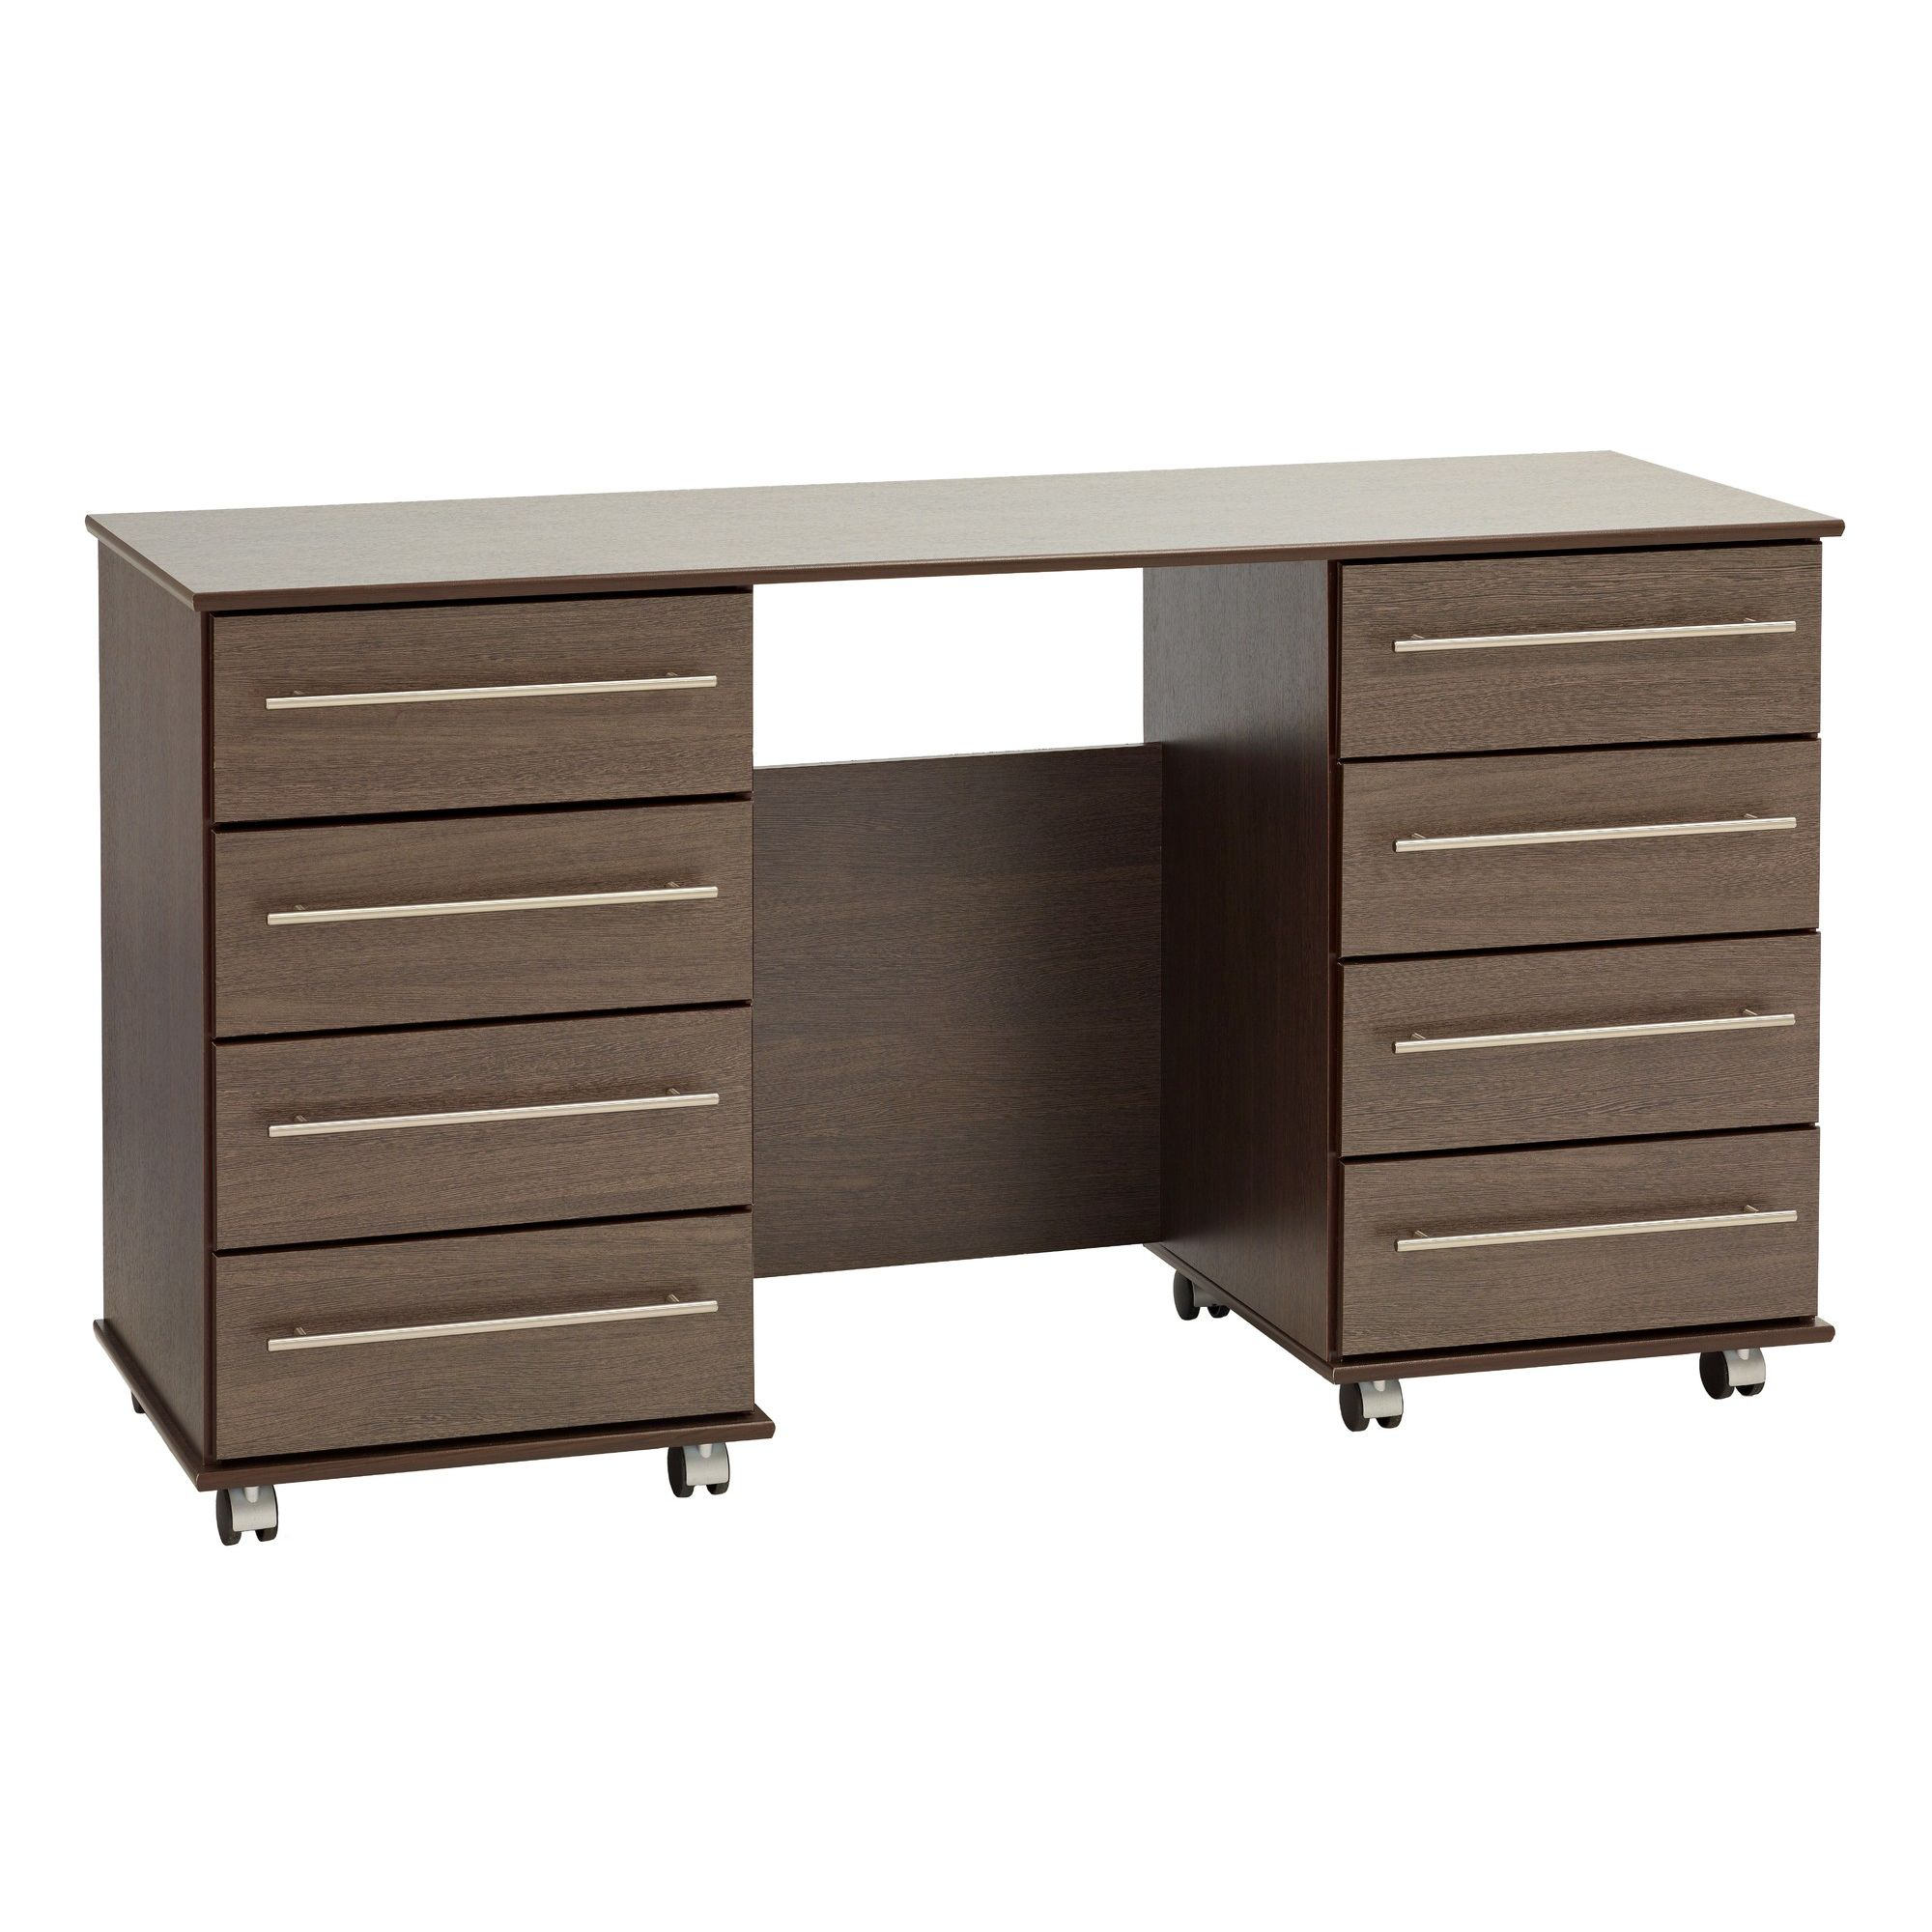 Ideal Furniture New York Double Dressing Table - Oak at Tesco Direct